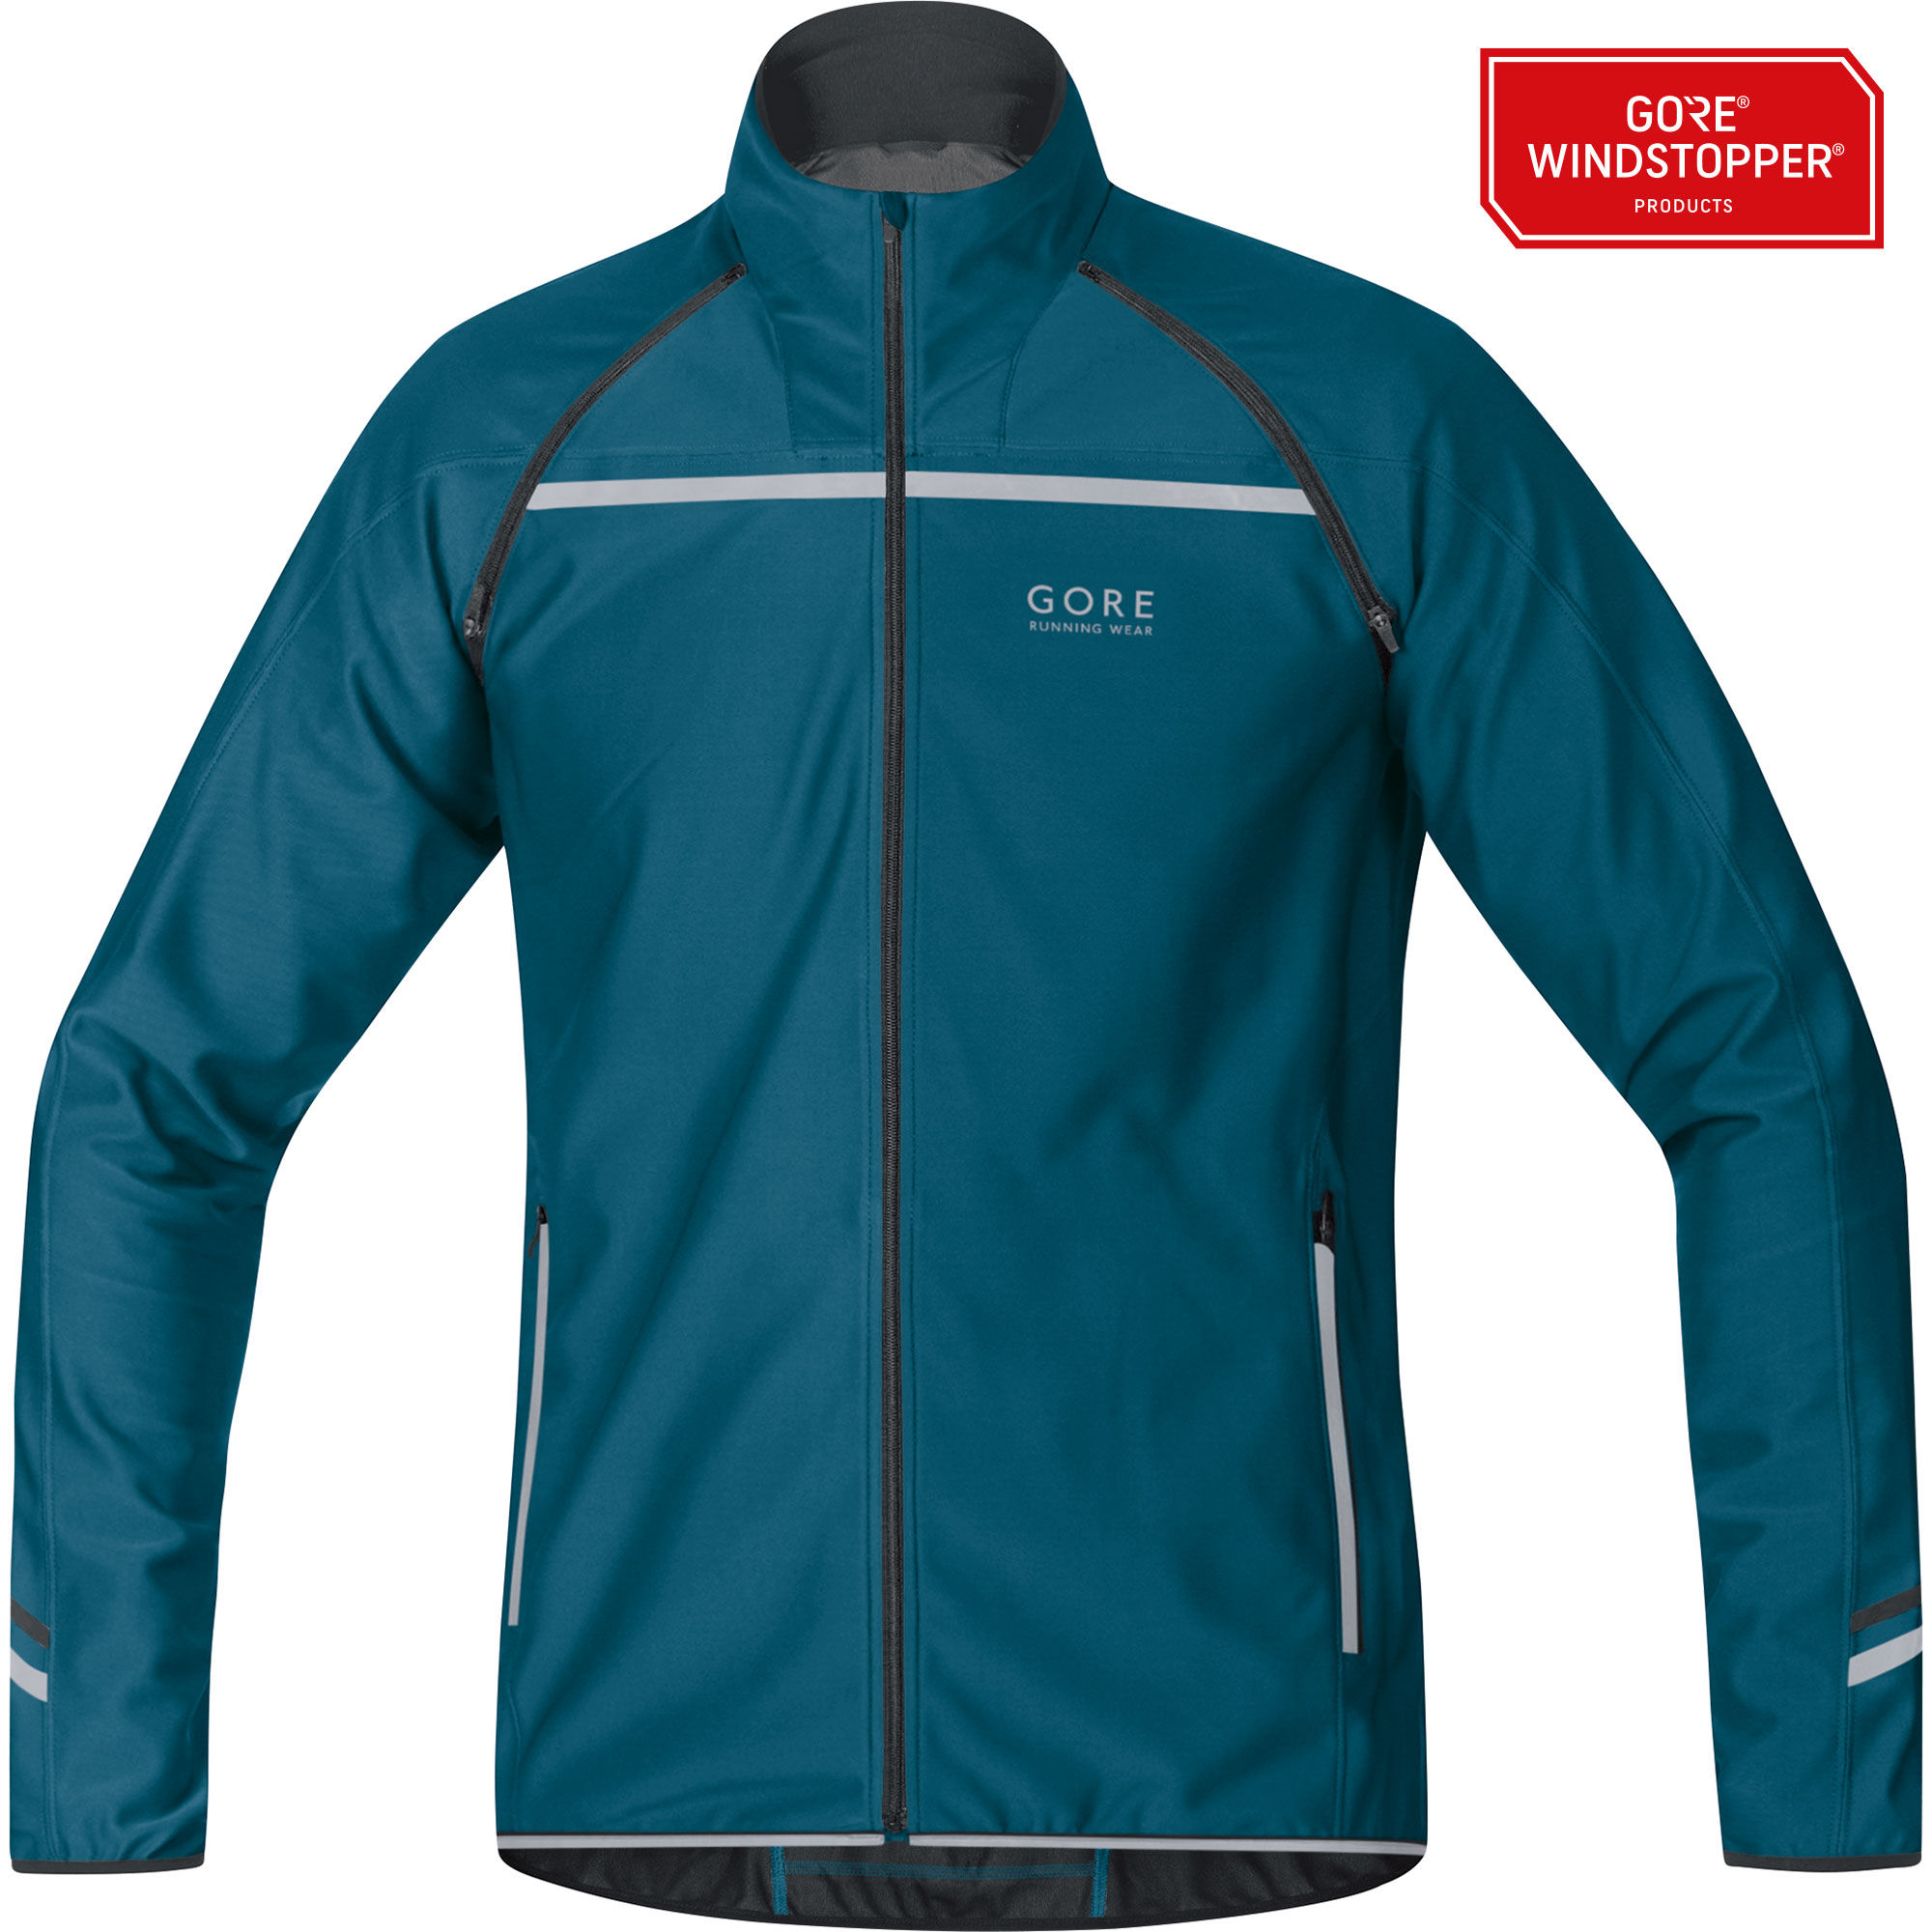 Gore Mythos 2.0 WS SO Zip-Off Light Jacket in Blau